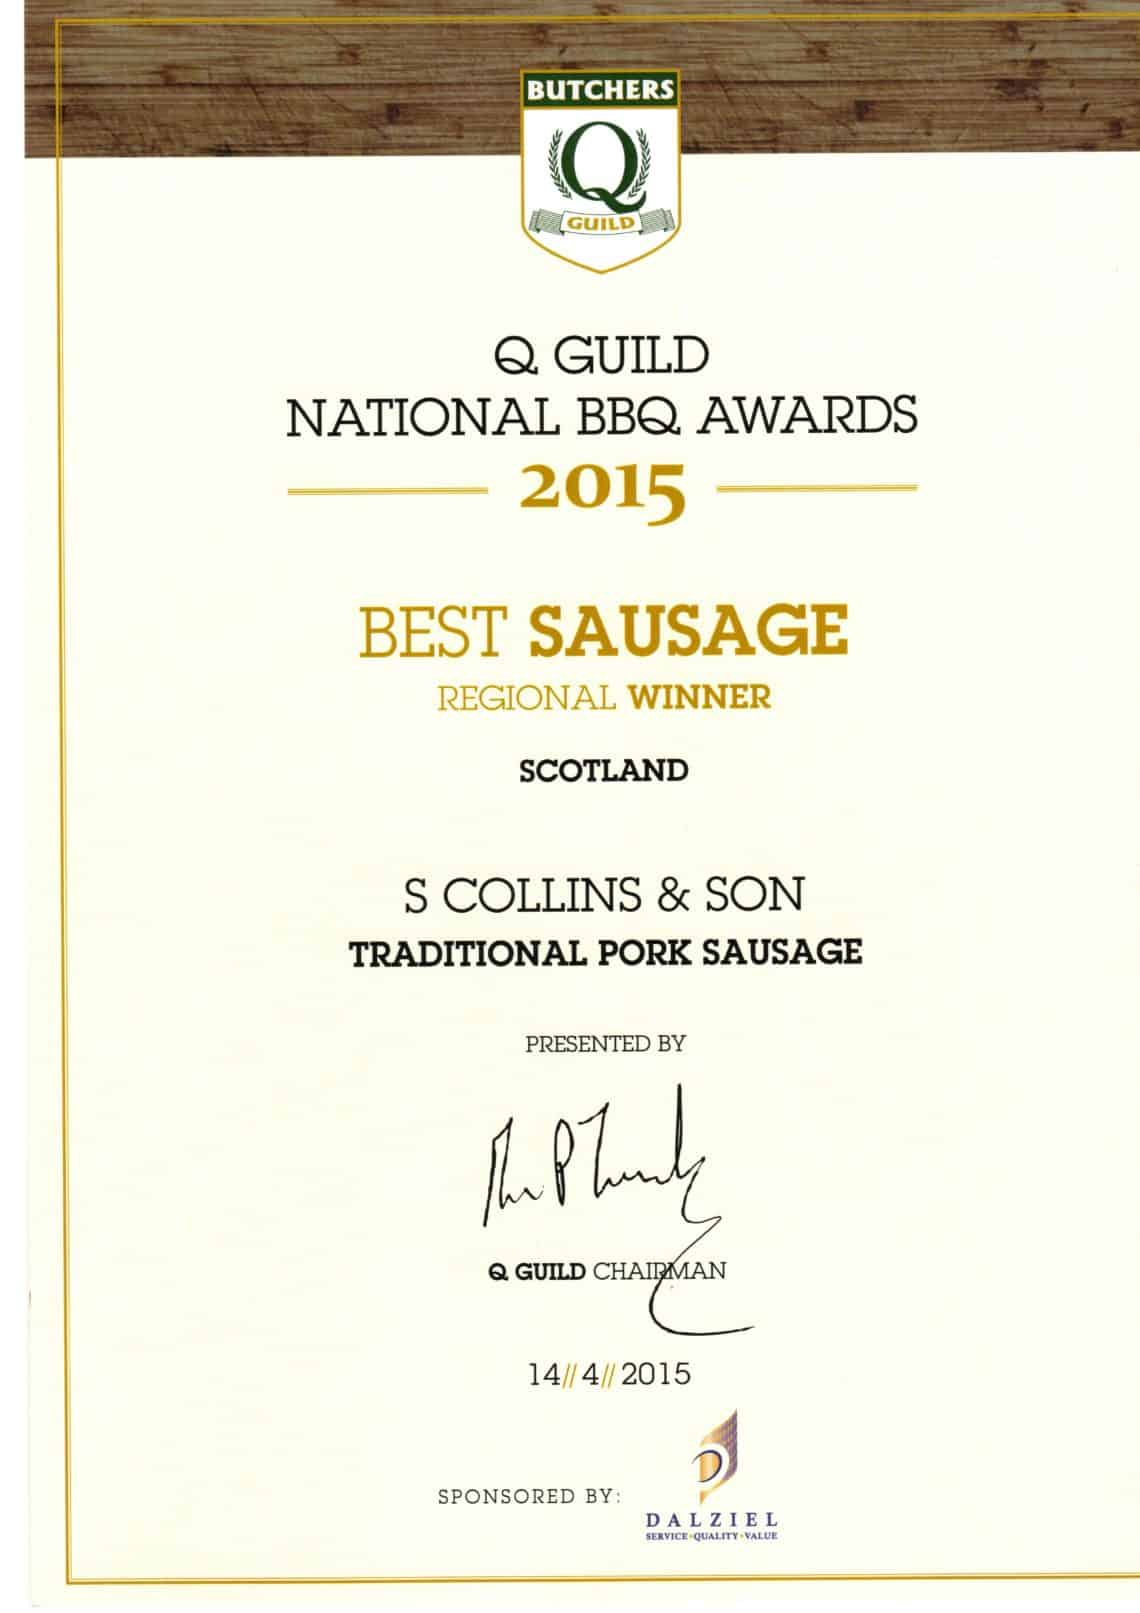 National BBQ Awards 2015: Best Sausage